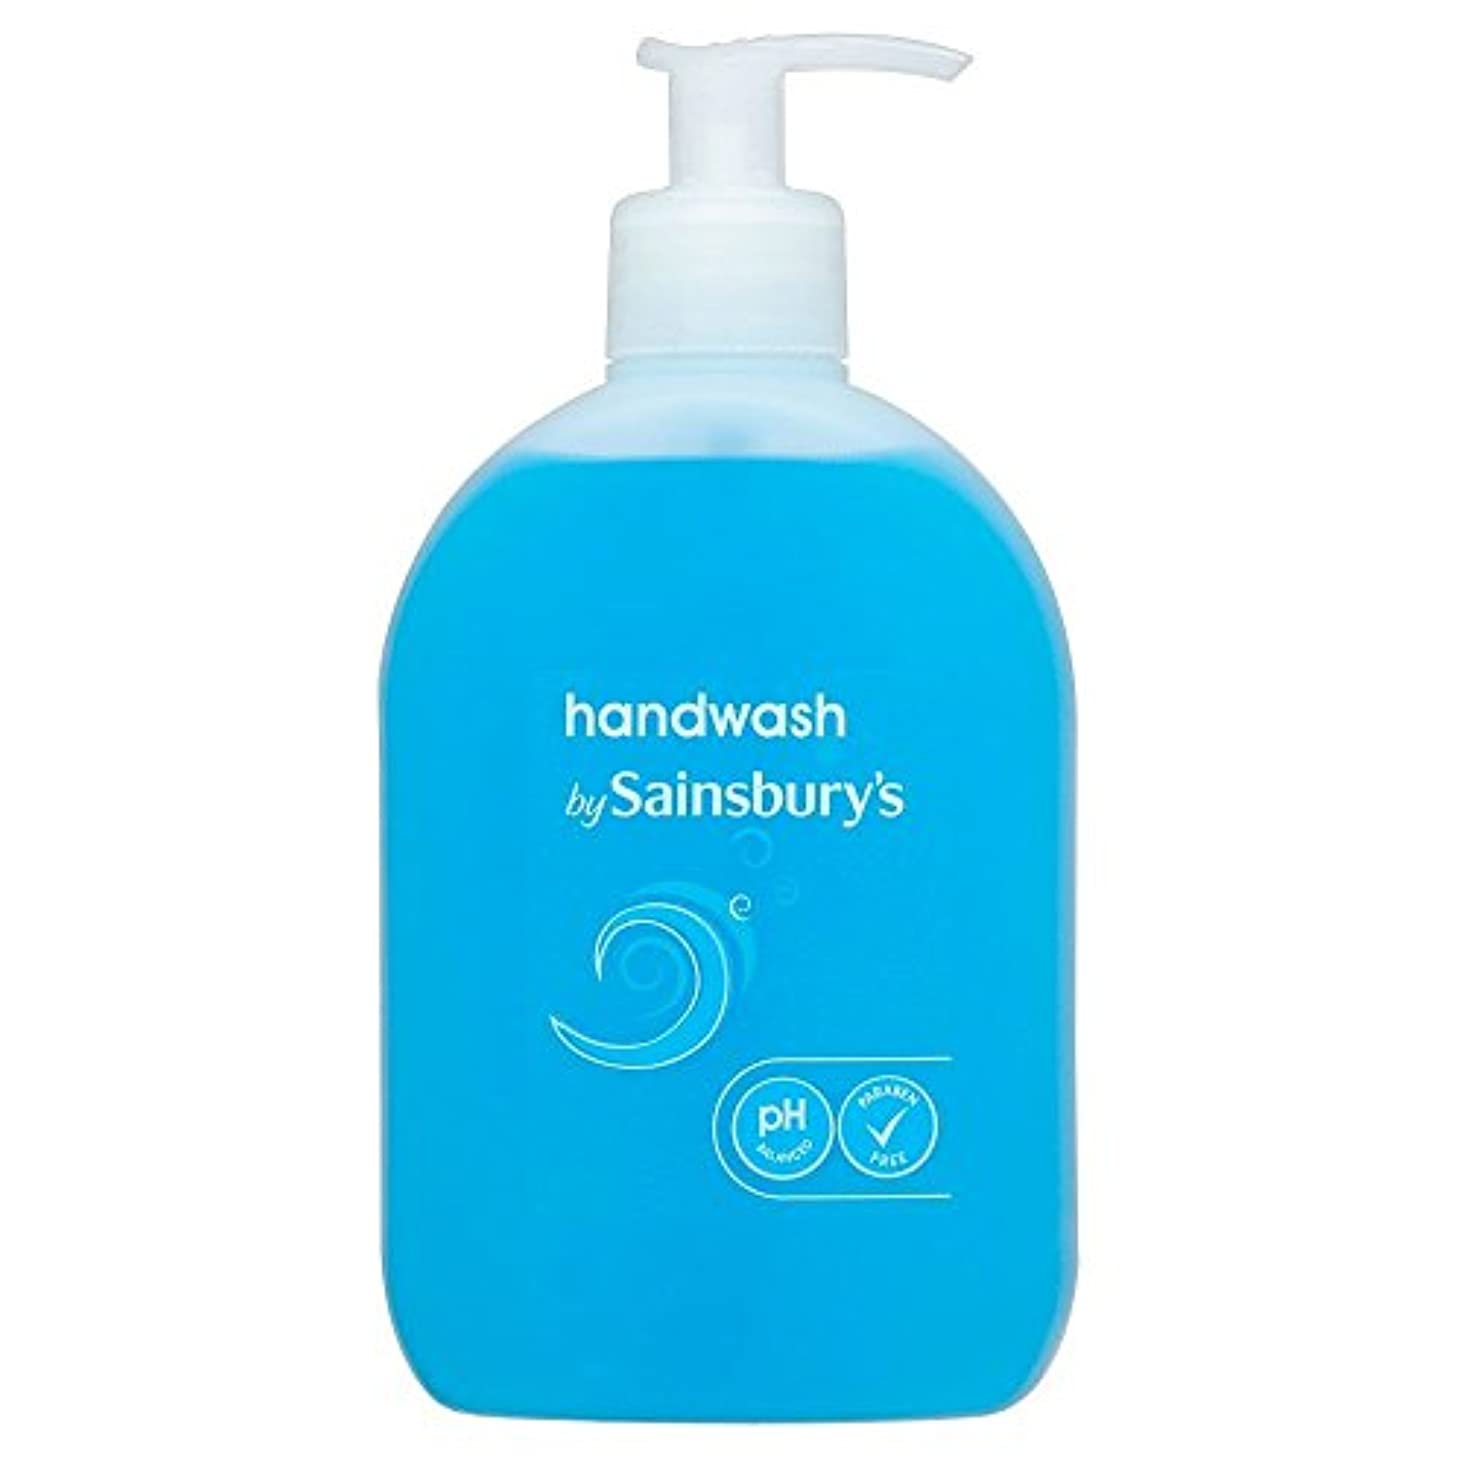 Sainsbury's Handwash, Blue 500ml (Pack of 2) - (Sainsbury's) 手洗い、青500ミリリットル (x2) [並行輸入品]